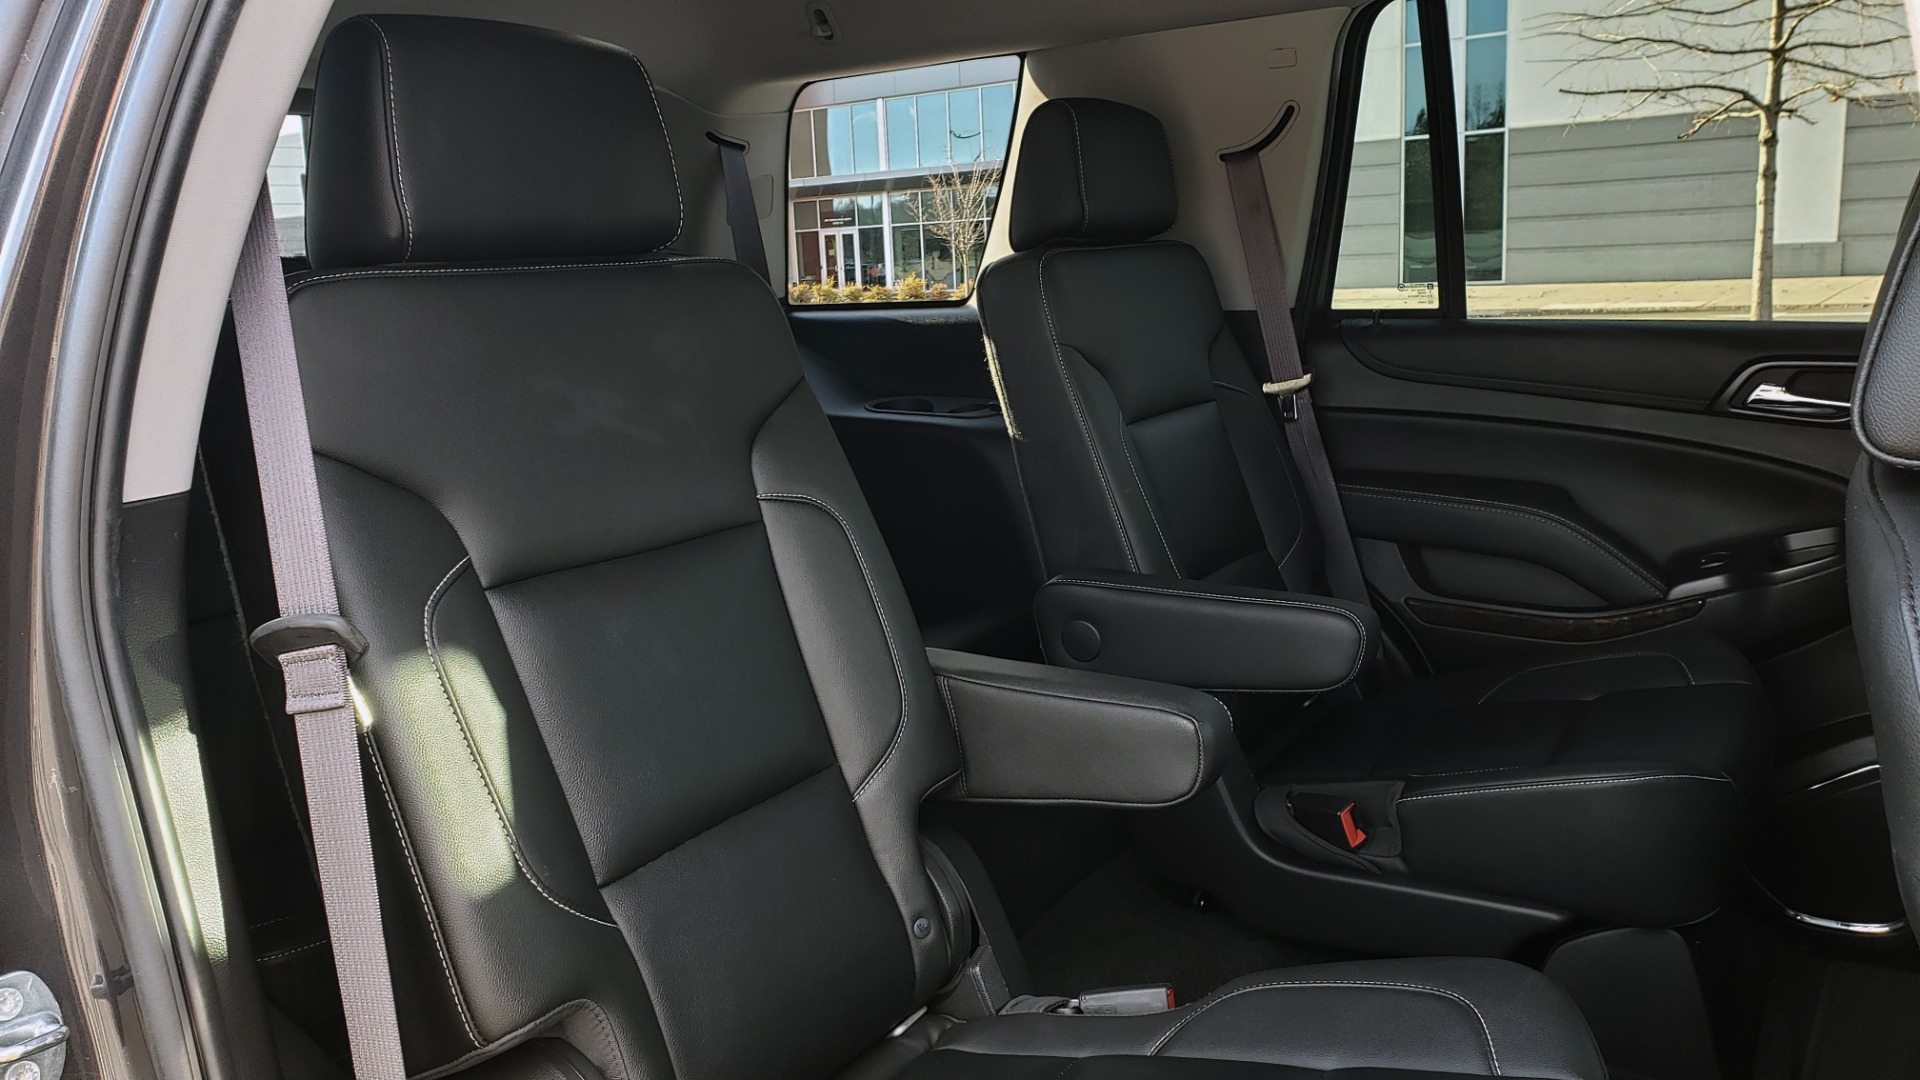 Used 2017 Chevrolet TAHOE 4WD LT / LUXURY PKG / NAV / BOSE / 3-ROW / REARVIEW for sale Sold at Formula Imports in Charlotte NC 28227 79